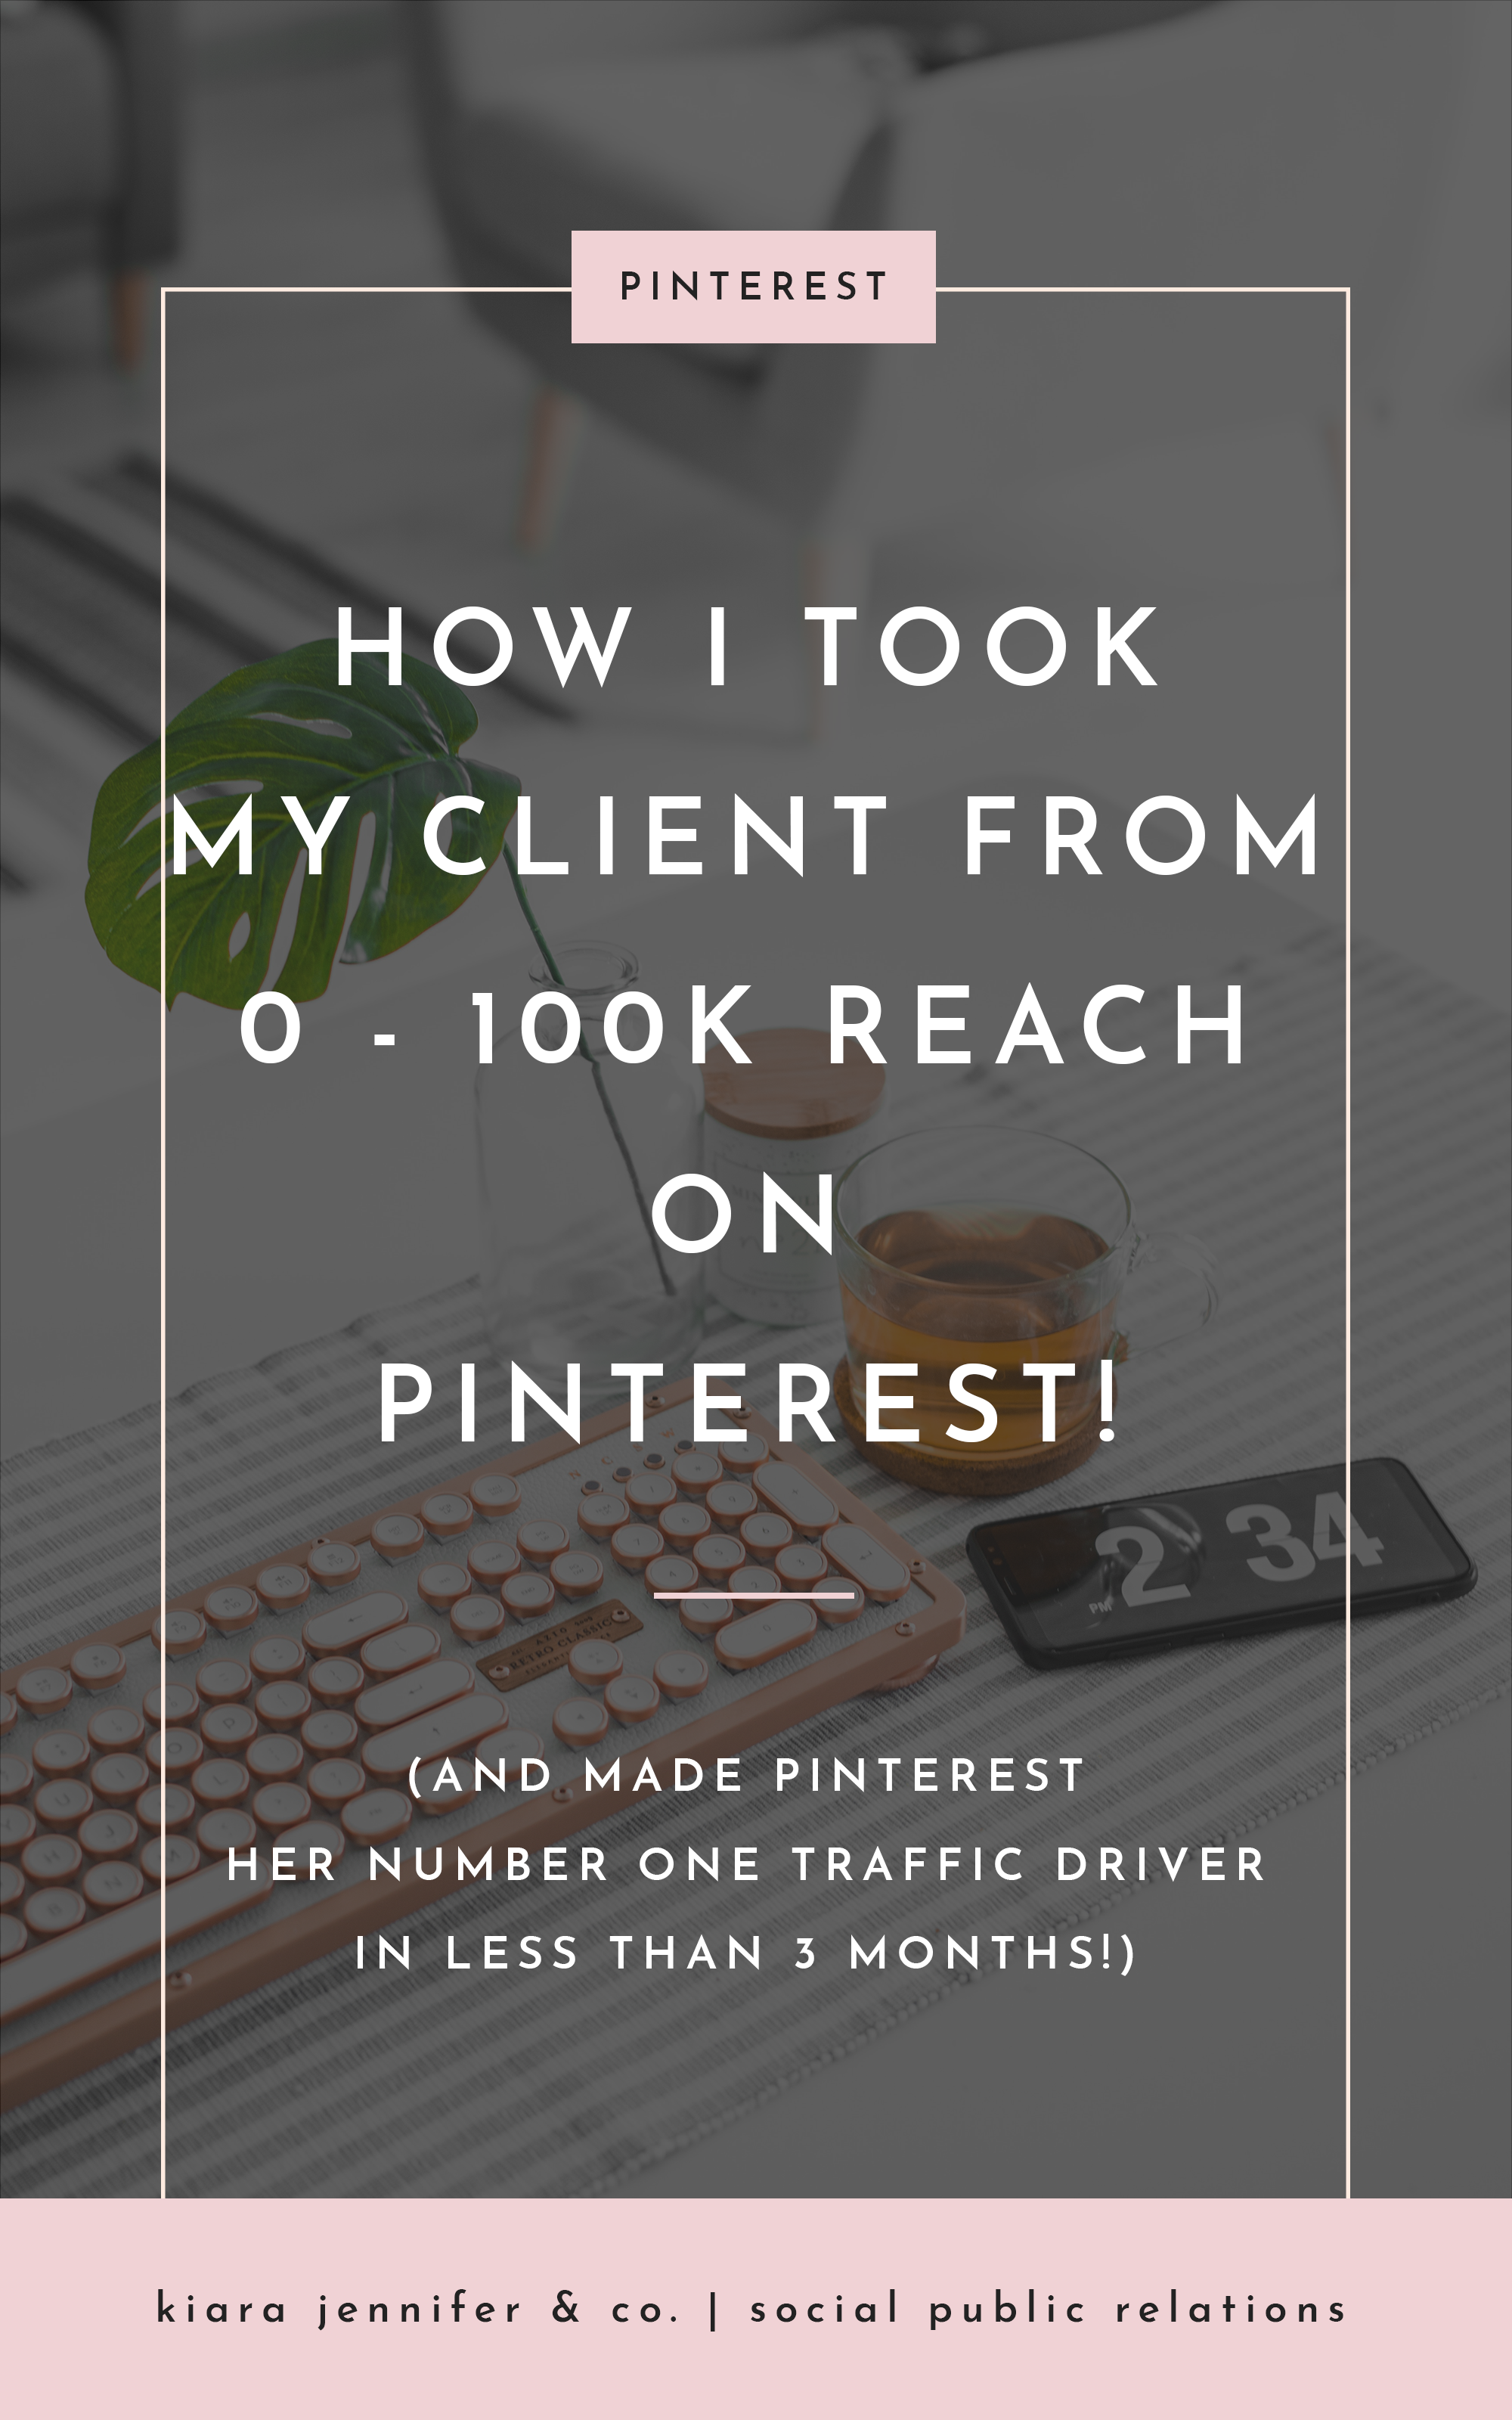 pinterest | marketing | increase web traffic | kiara jennifer & co | social media | digital public relations